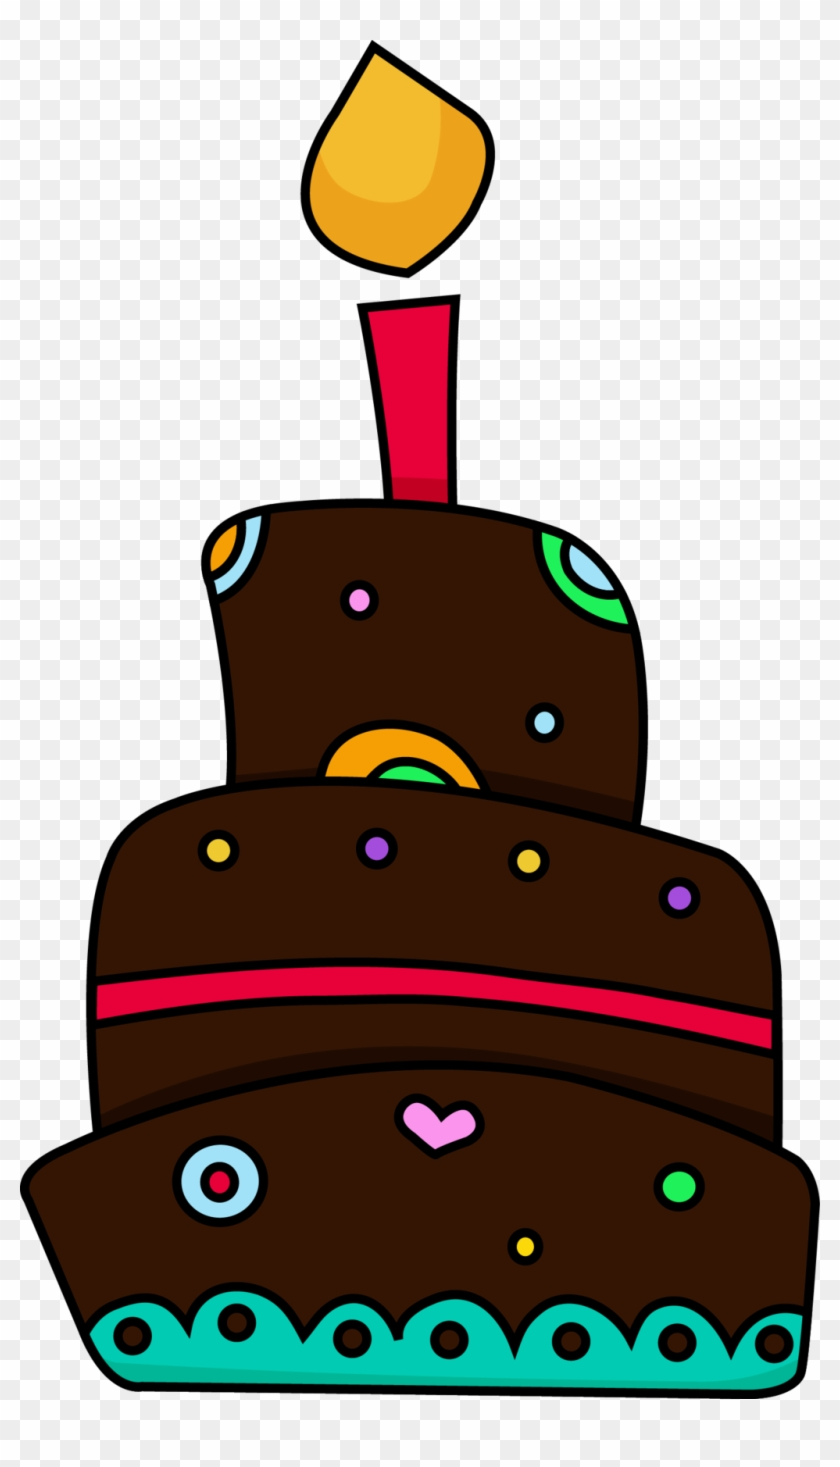 Birthday Cake Clip Art Cliparts And Others Art Inspiration - First Birthday Cake Cartoon Png #17180